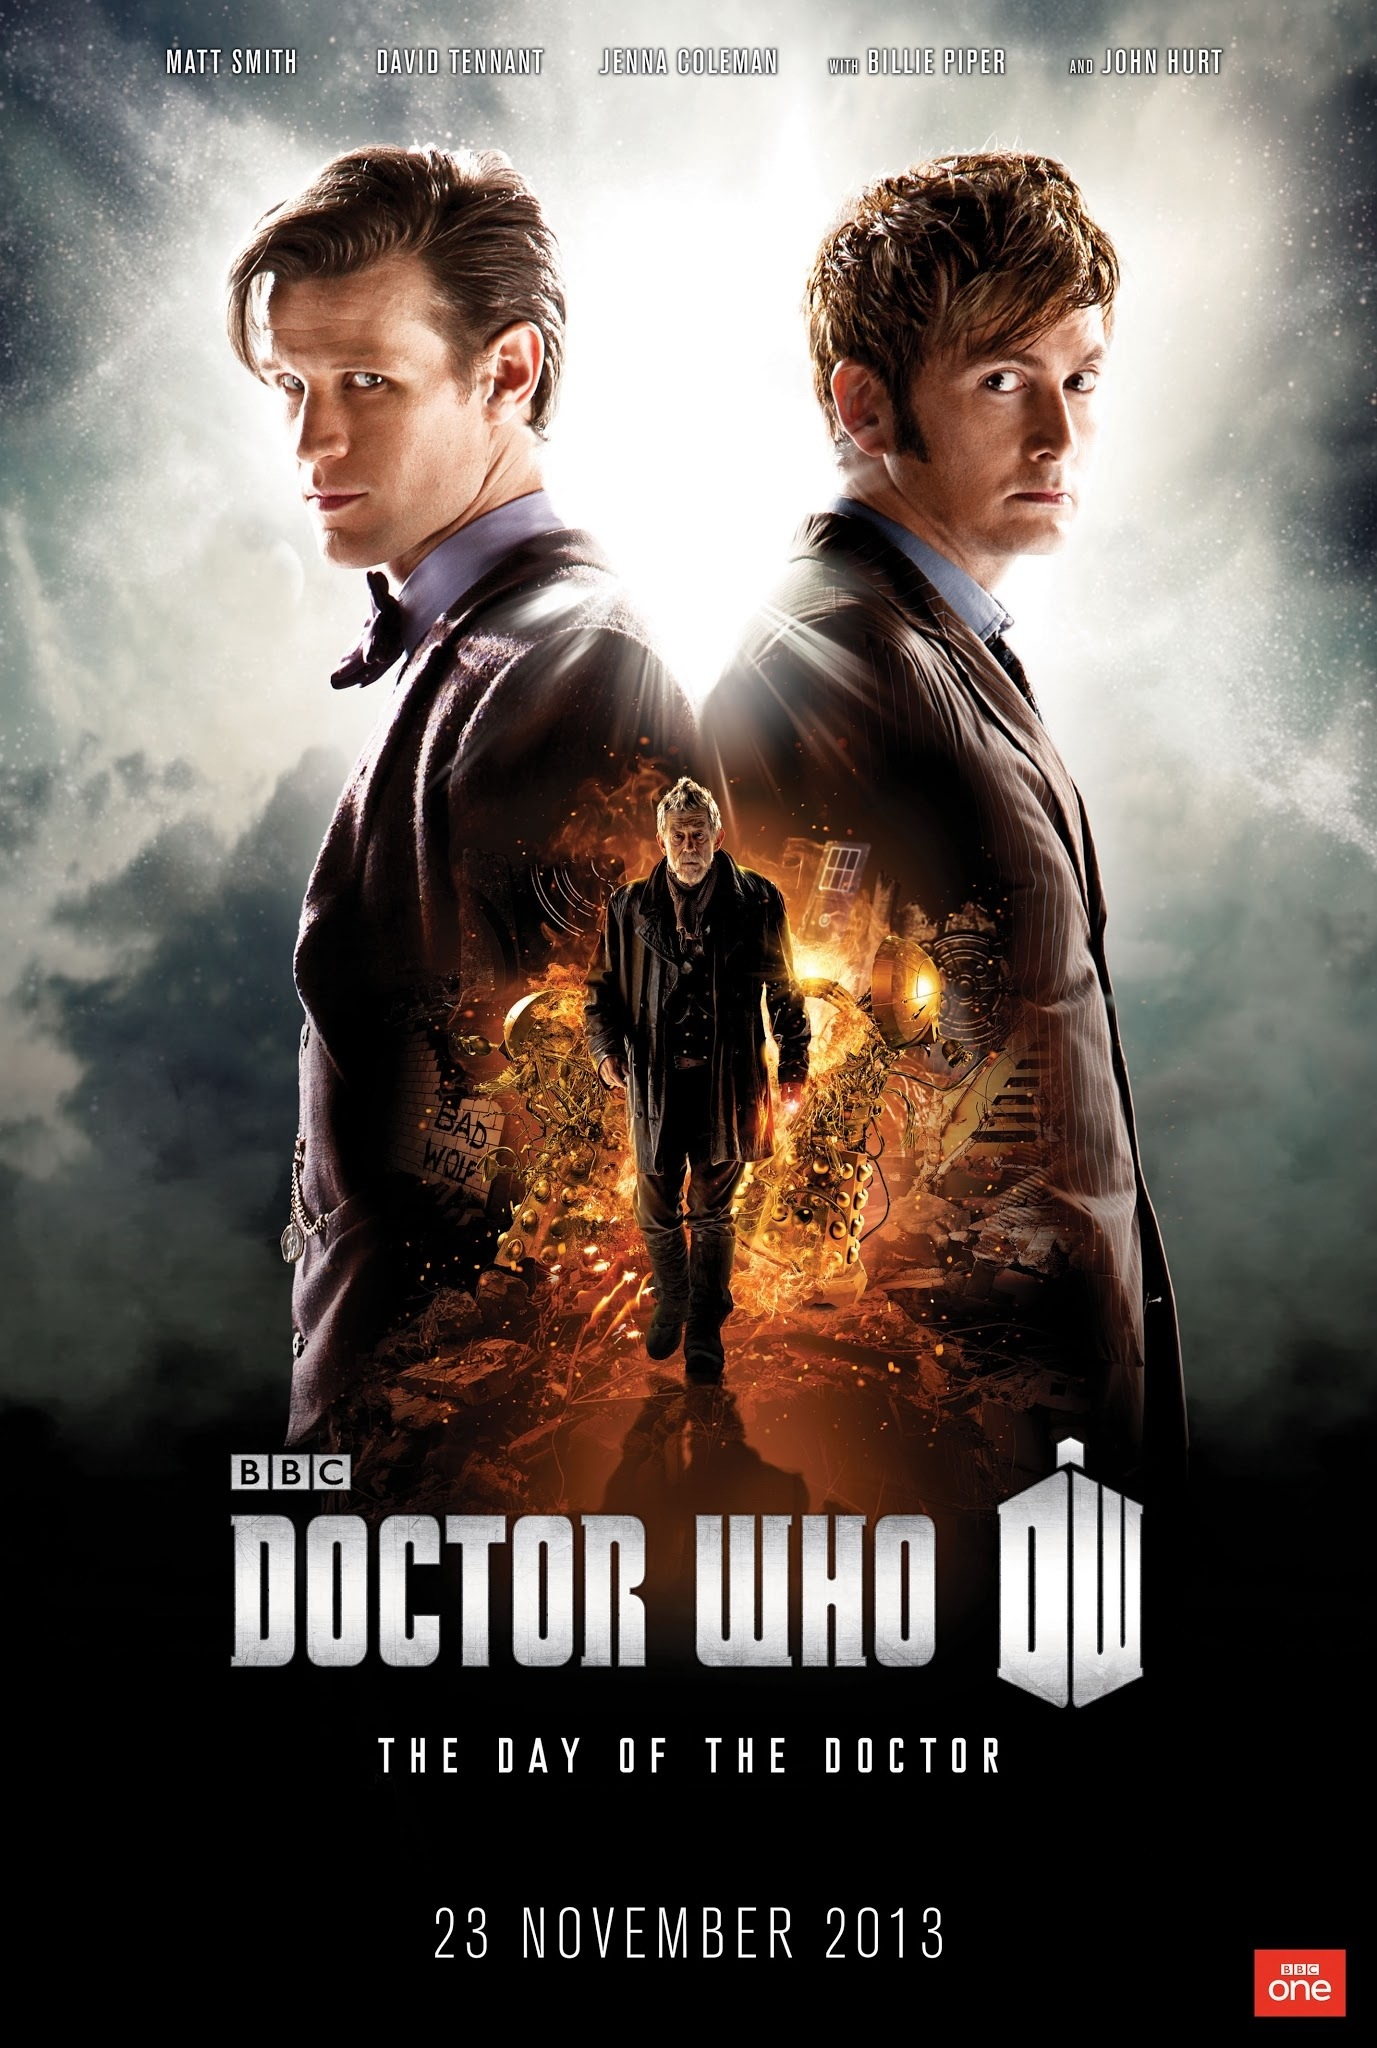 Doctor Who News: Theatrical 3D Screenings Of The Day of The Doctor Announced For The US